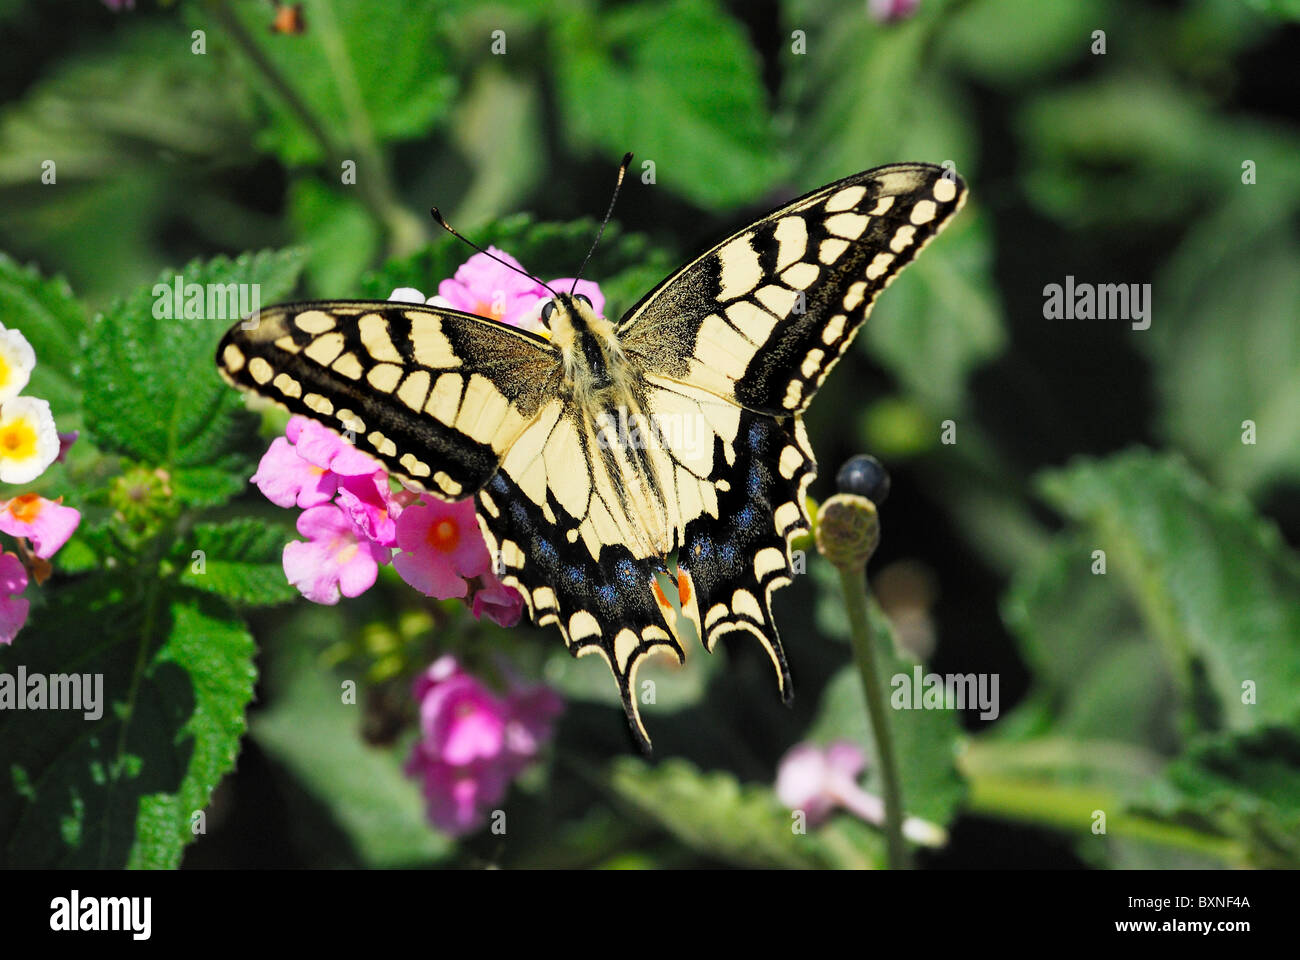 Swallowtail Butterfly (Papilio machaon) forewing. Papilionidae. Crete; late July - Stock Image